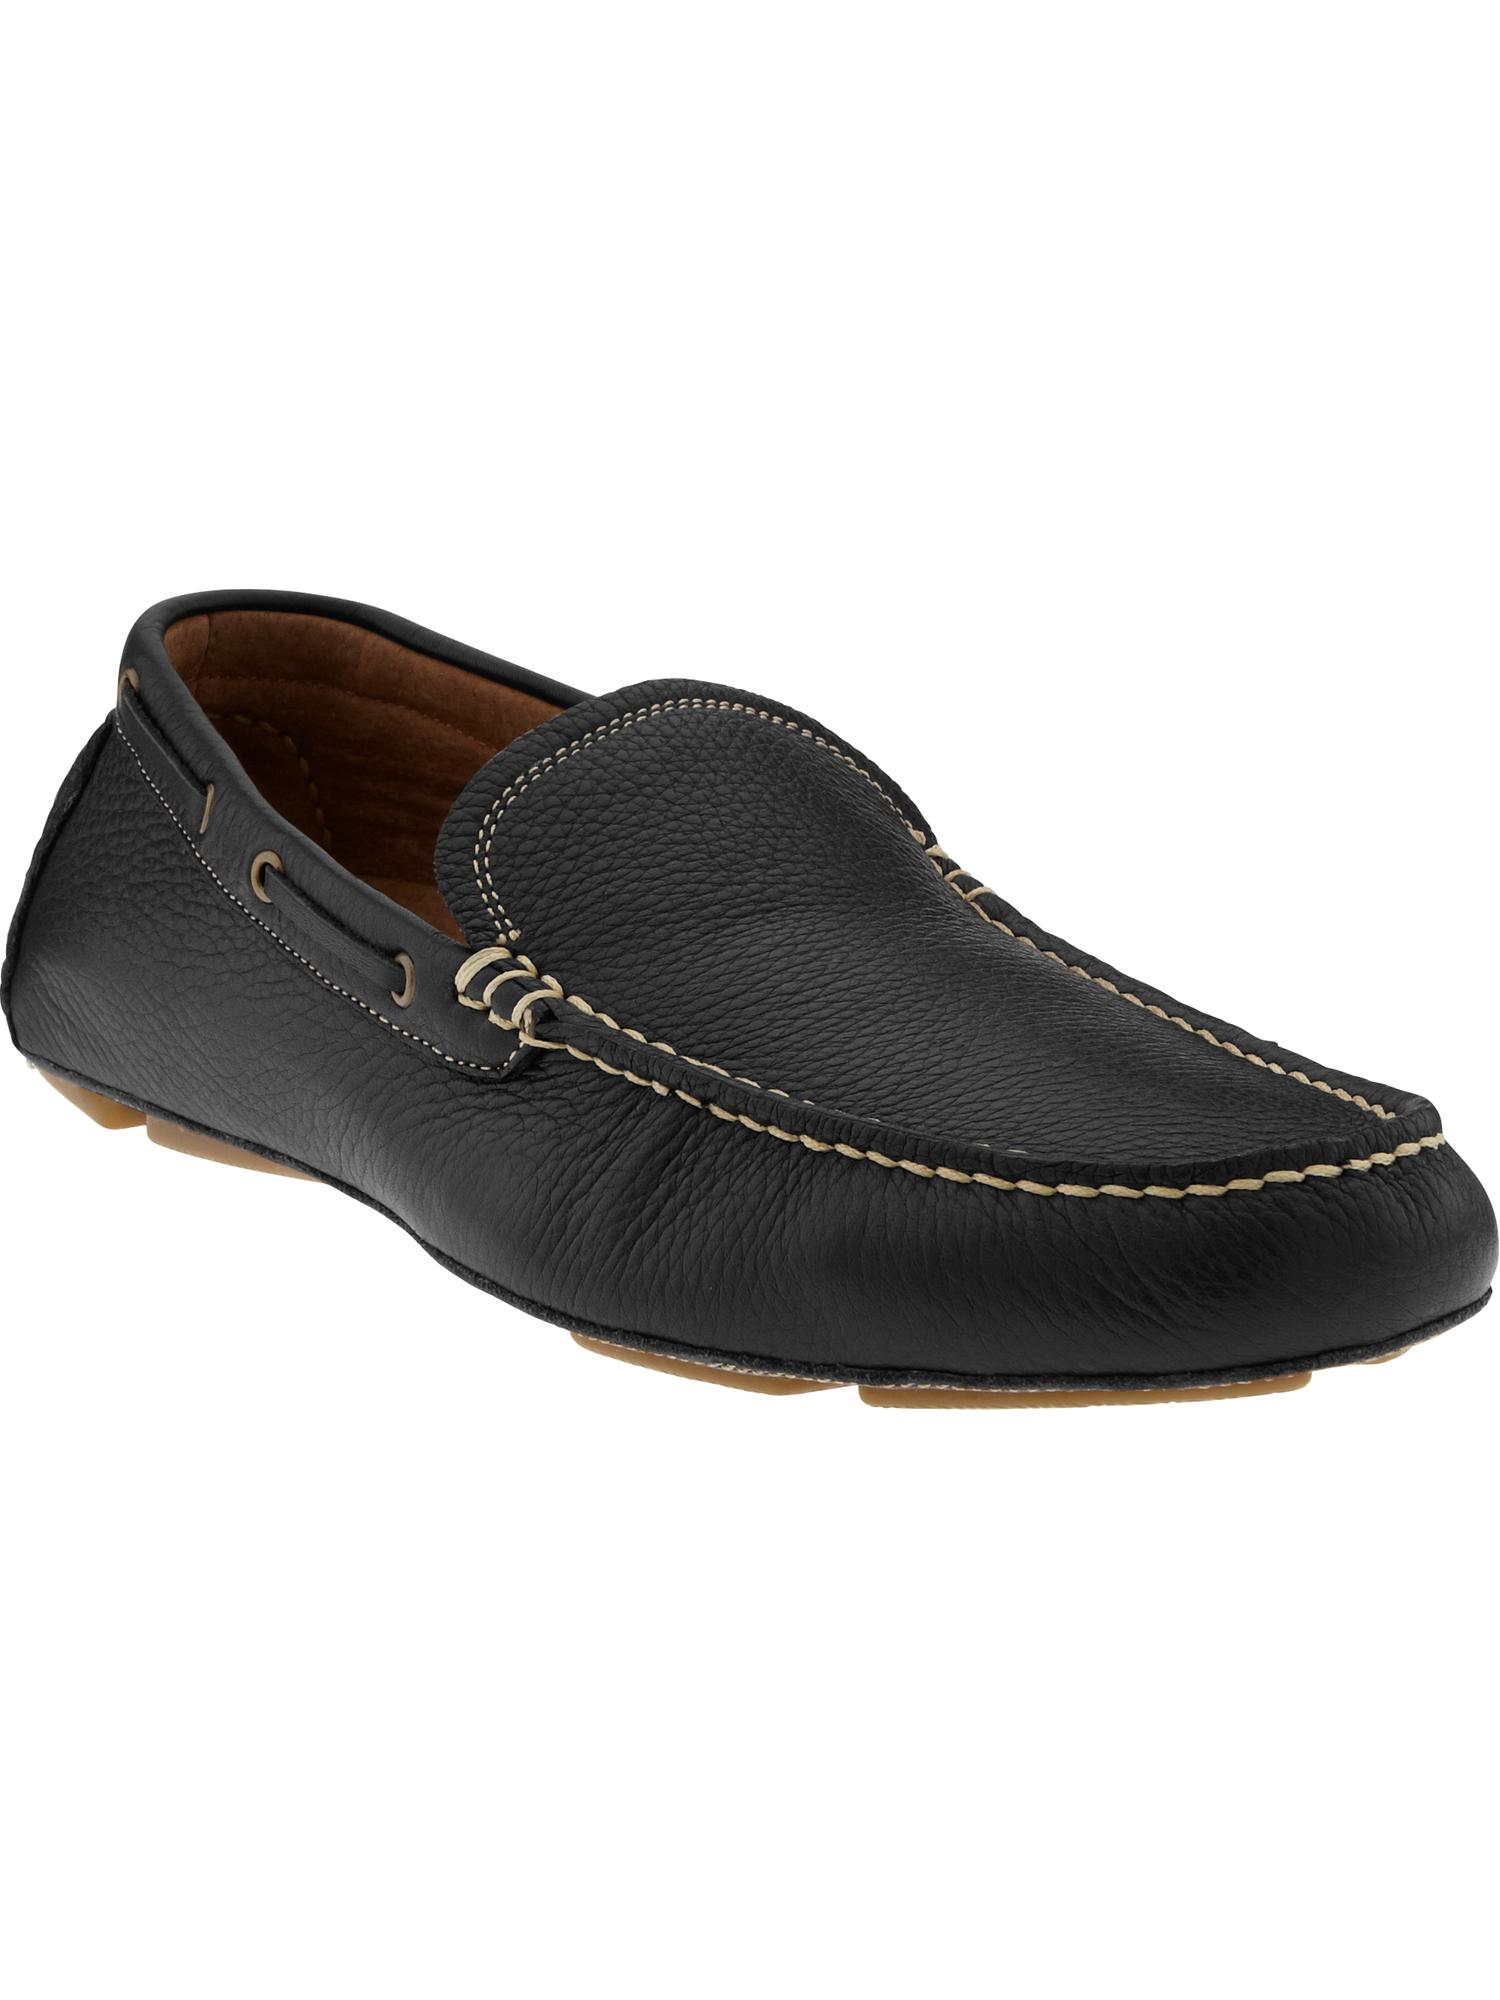 Shop a wide variety of classic and trendy men's shoes made with quality leather and attention to detail.